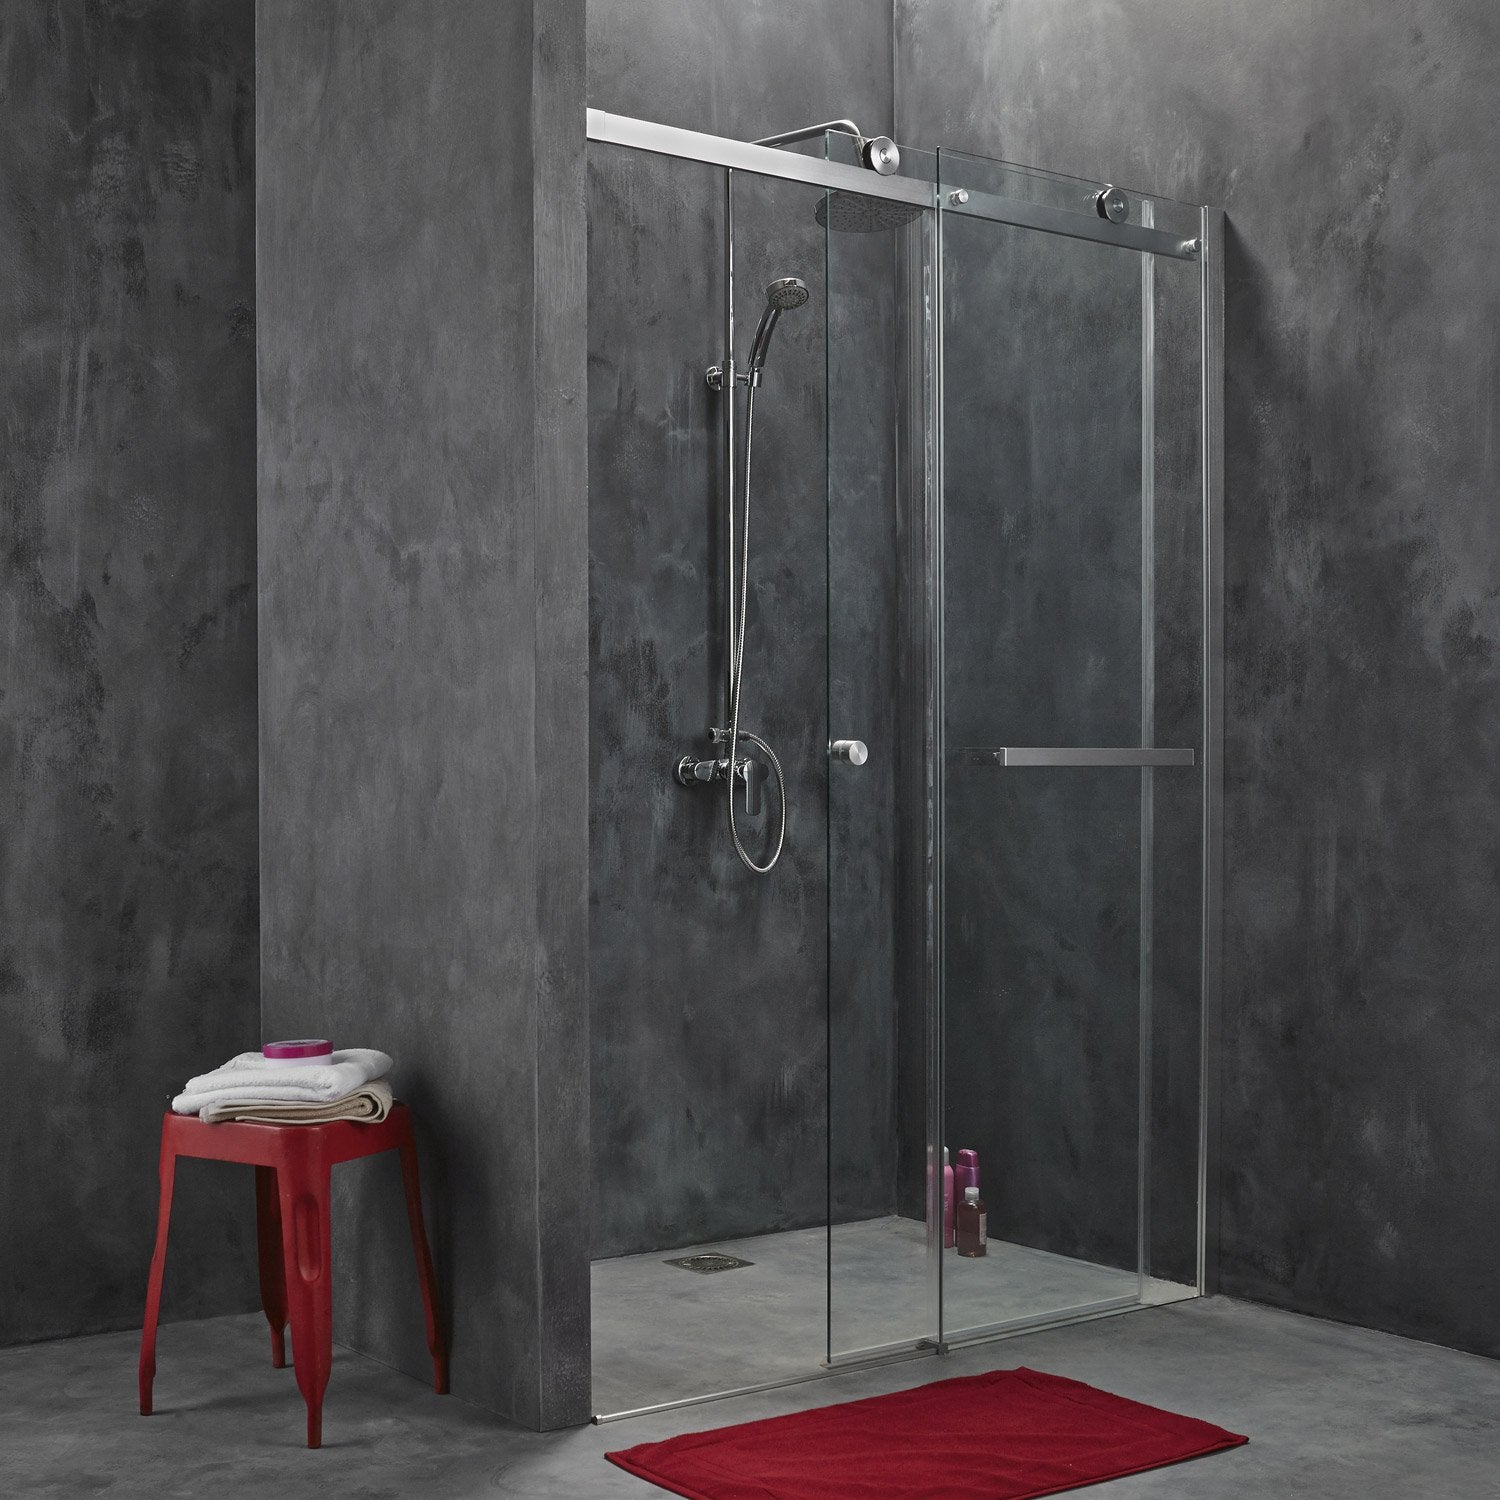 Porte de douche coulissante 137 140 cm profil chrom for Porte coulissante salon 140 cm